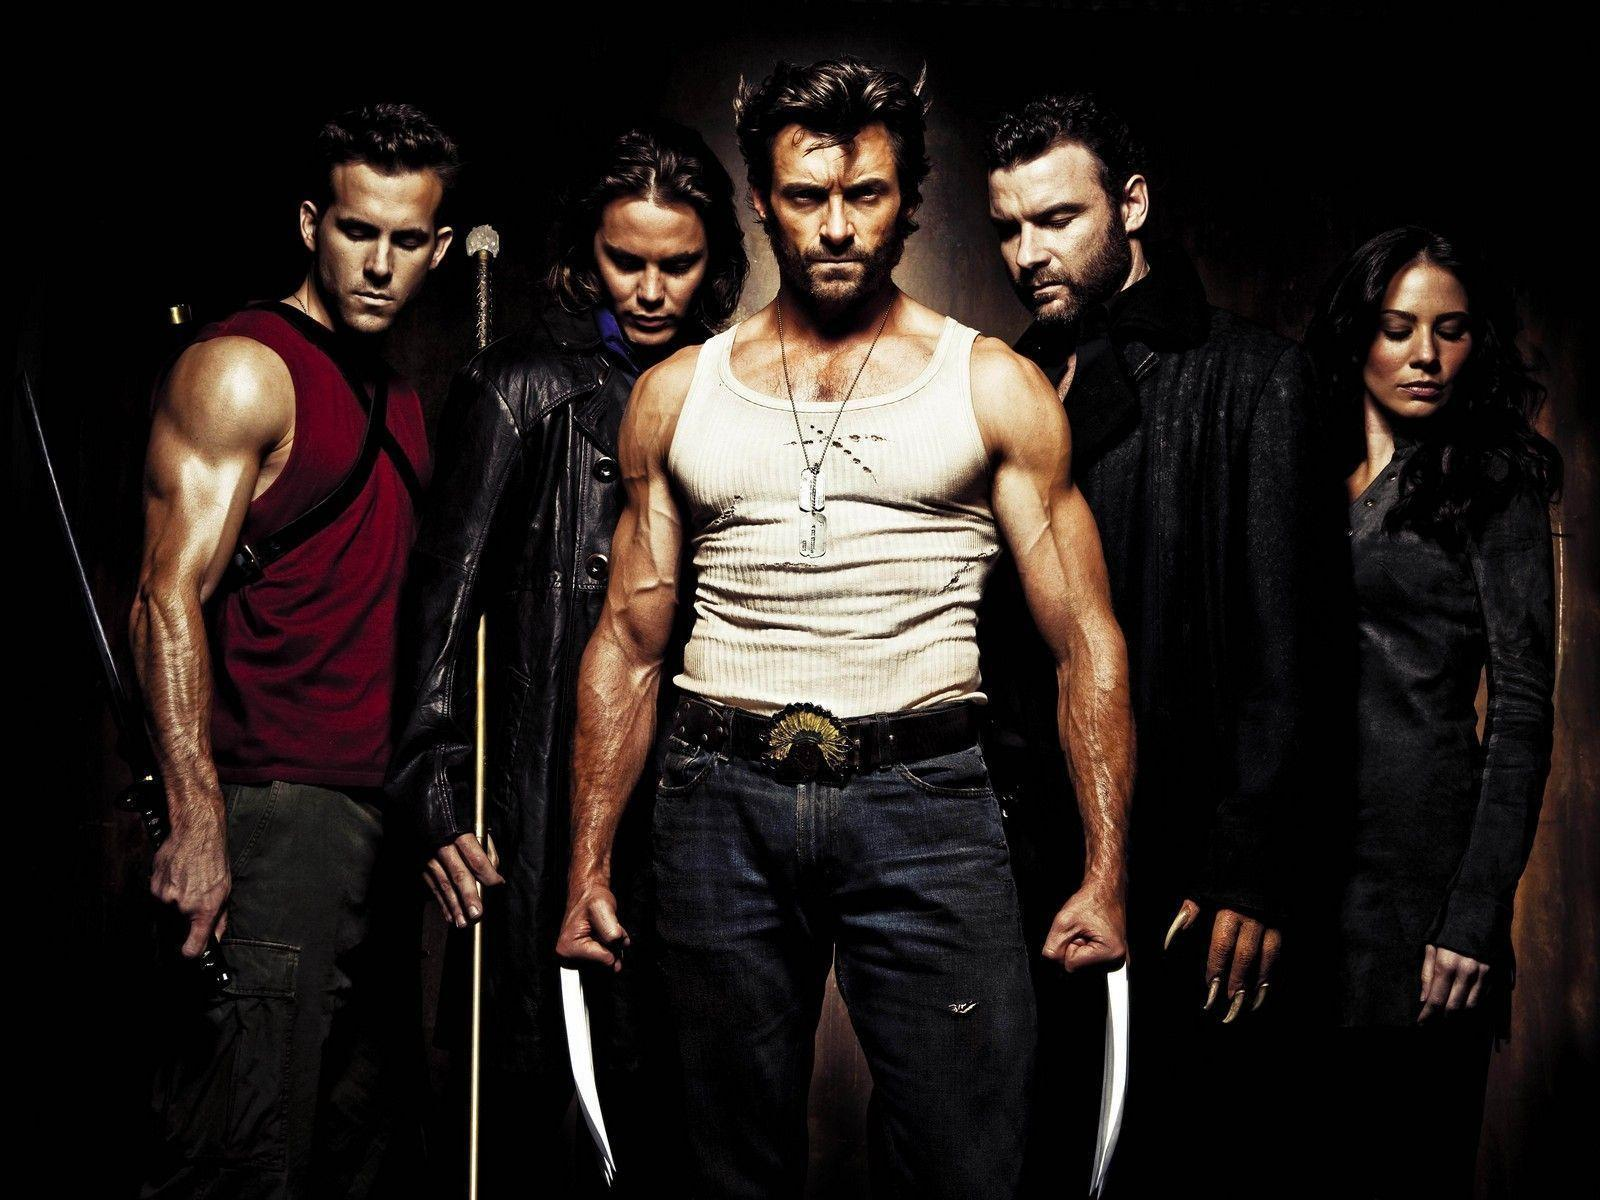 X Men Wolverine Wallpapers Free Download